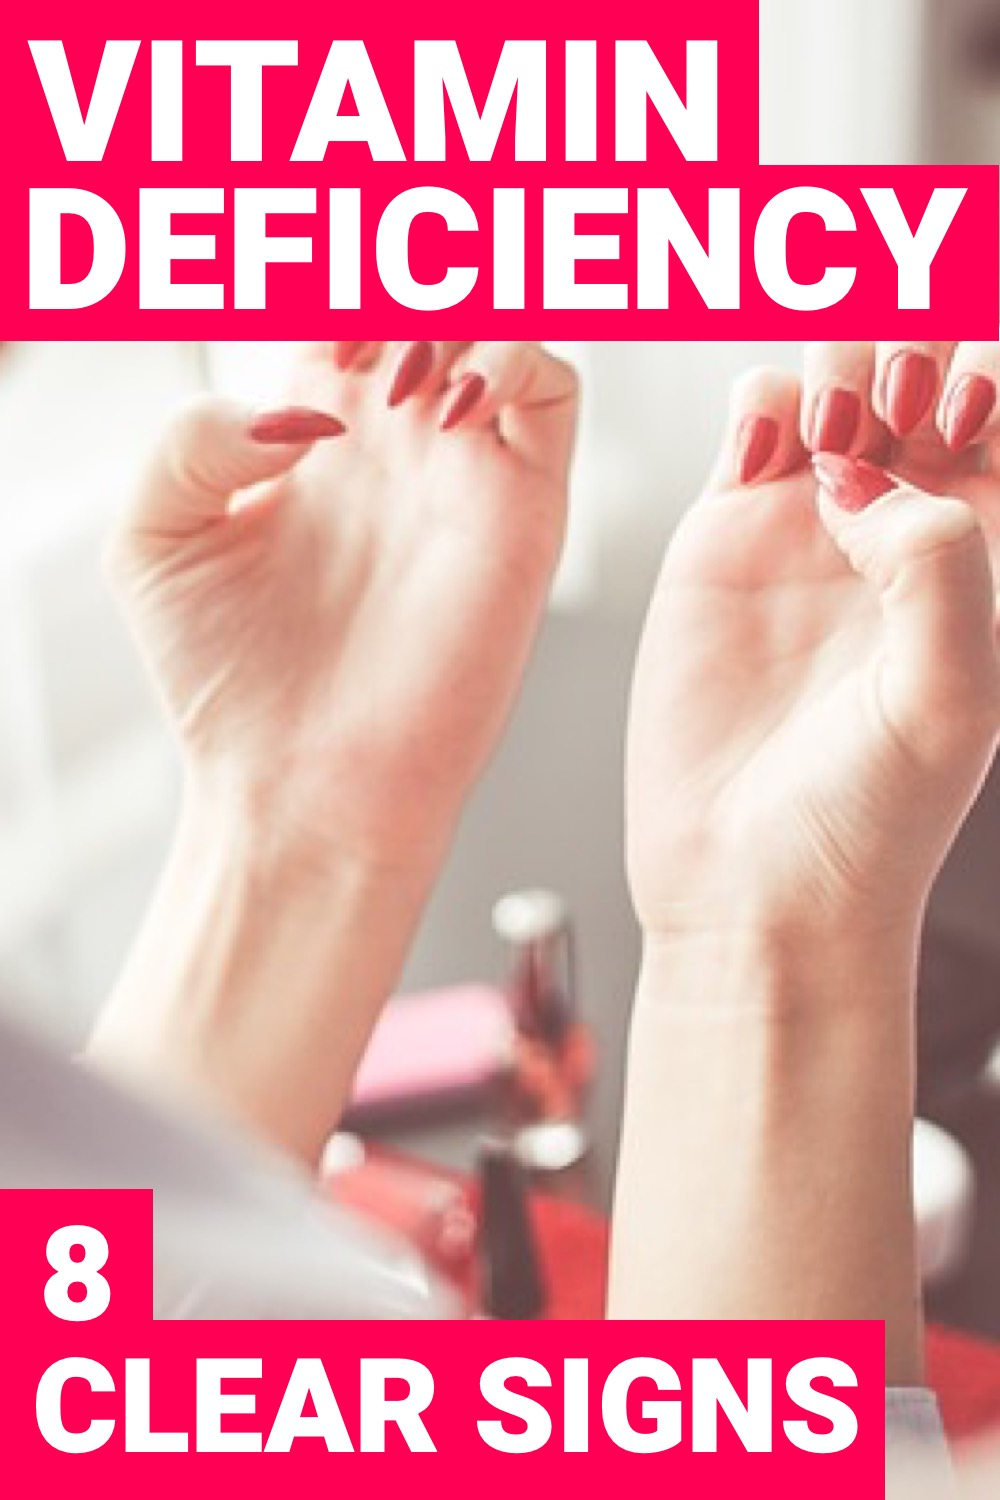 When you have a vitamin deficiency, your body is going to let you know. Here you'll find out the symptoms of having a vitamin deficiency.